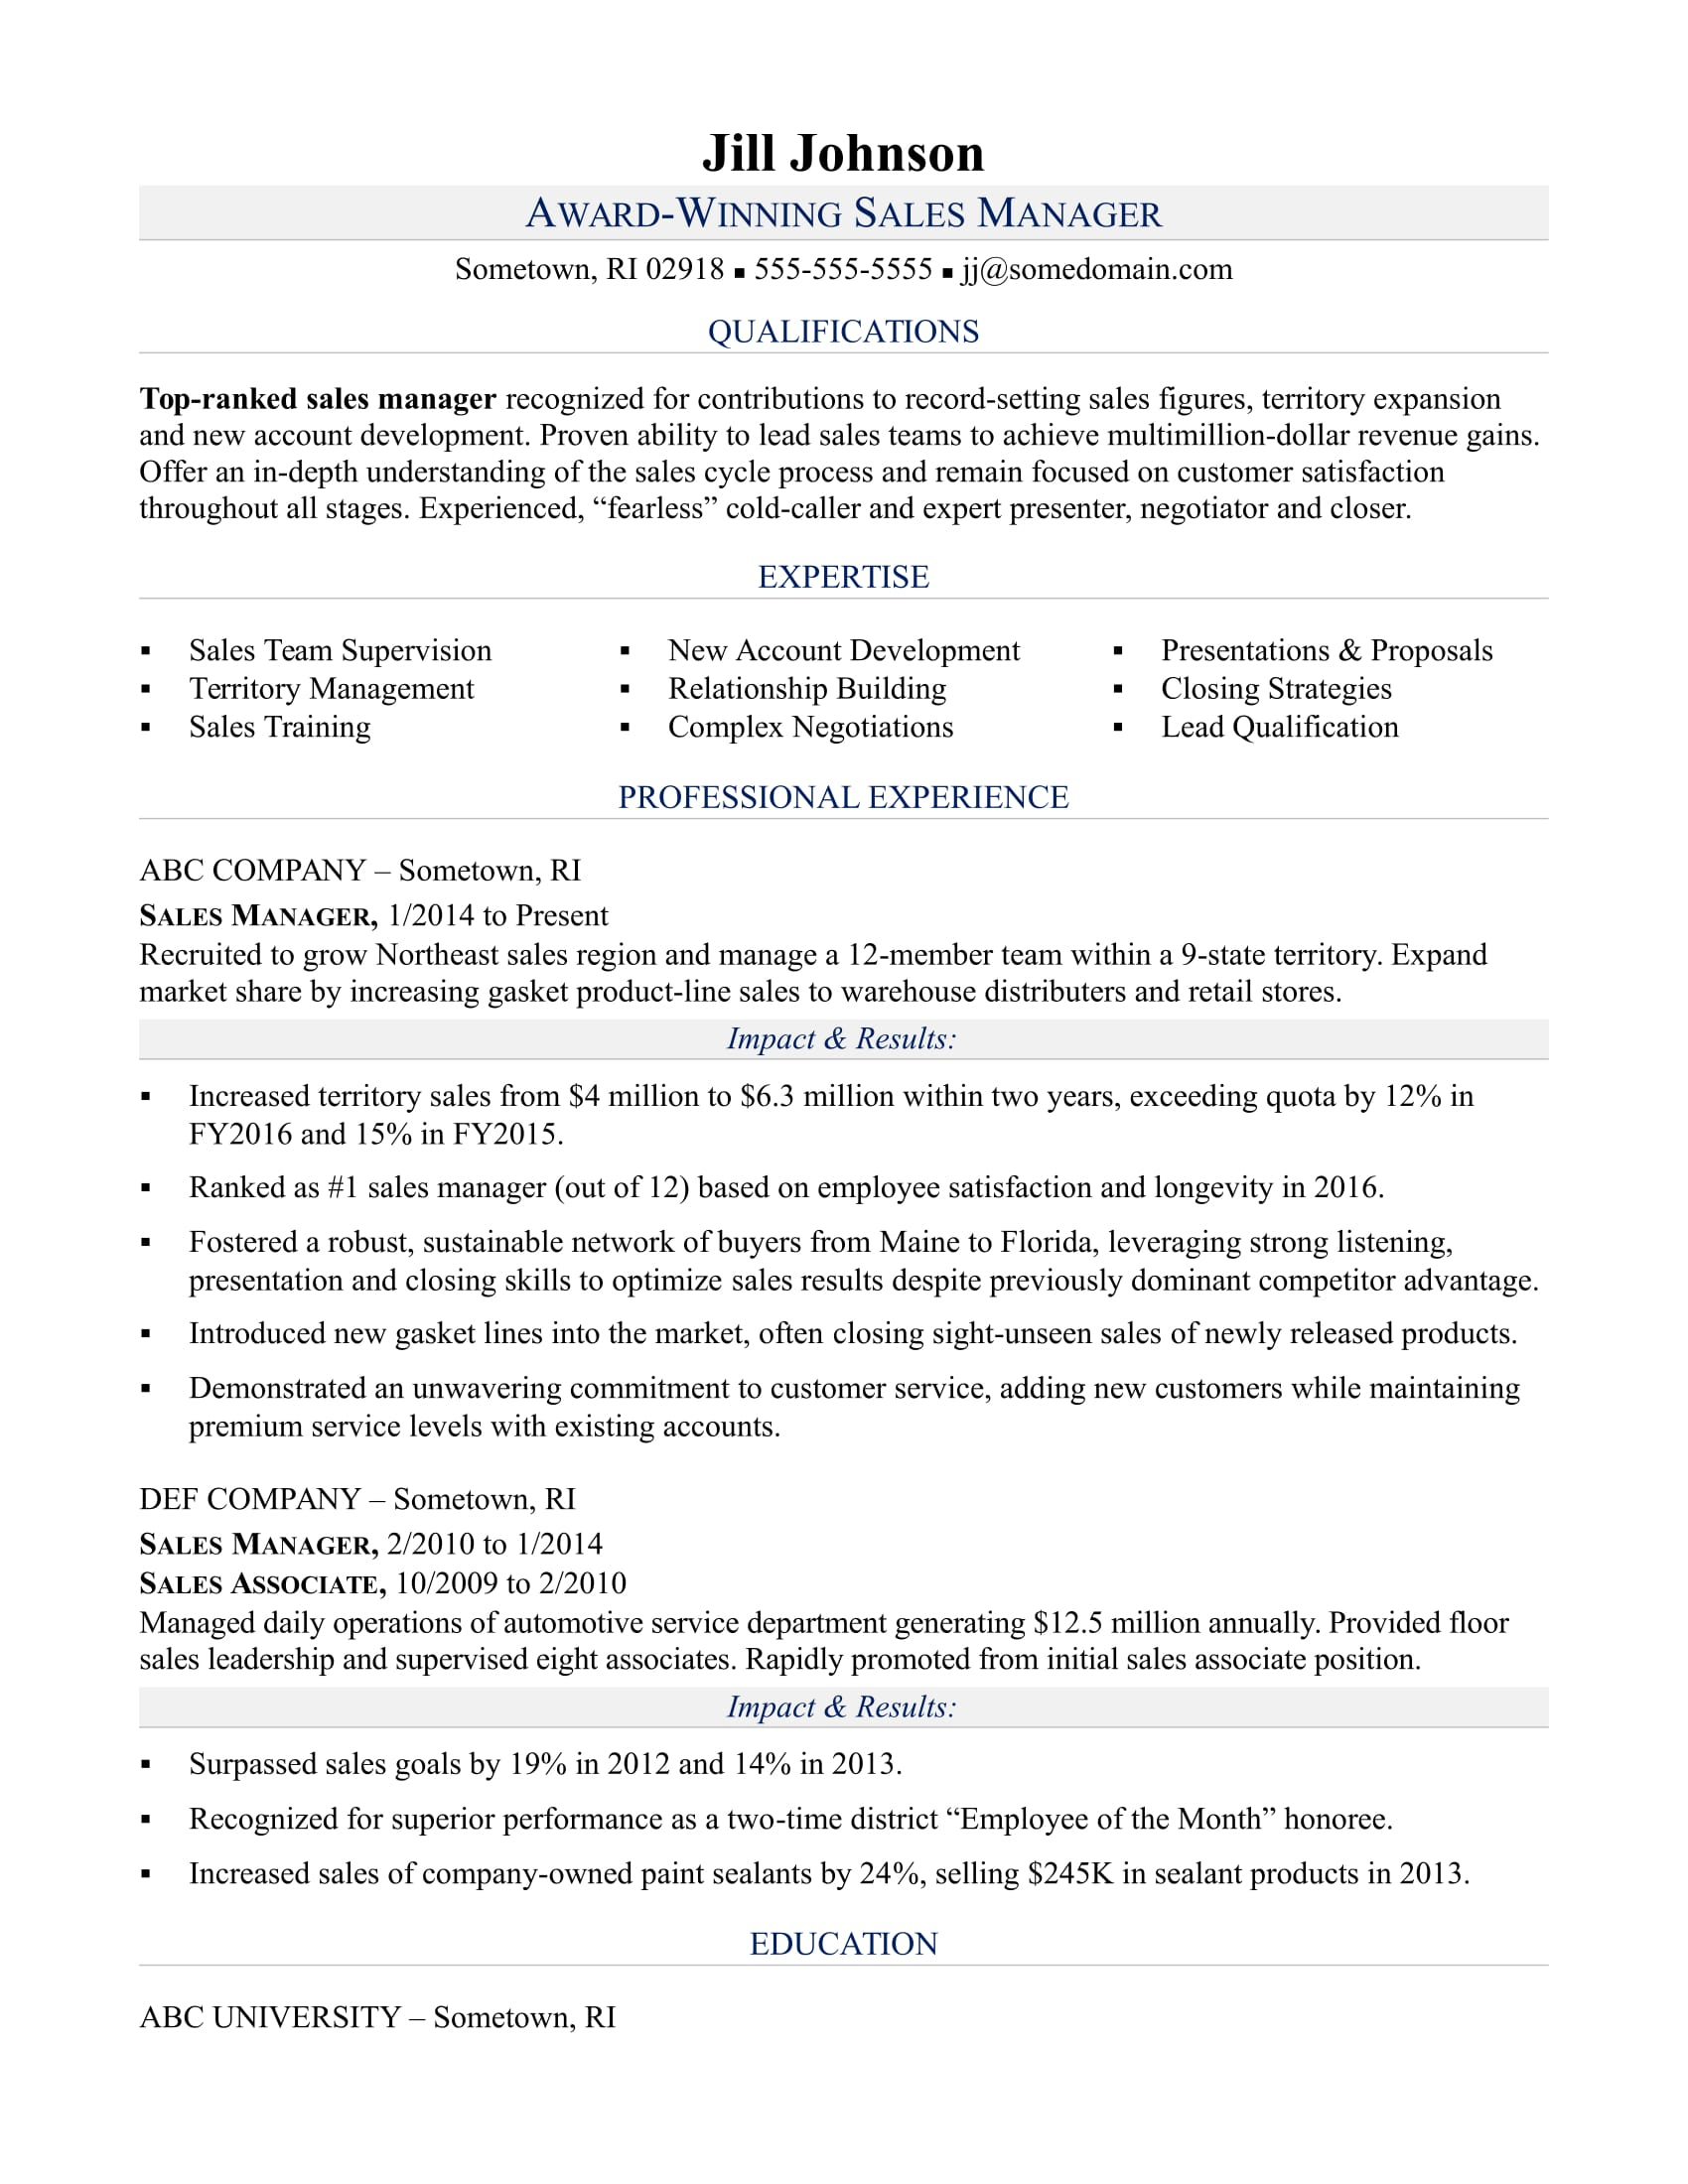 sample resume for a sales manager - Sample Resumes Sales